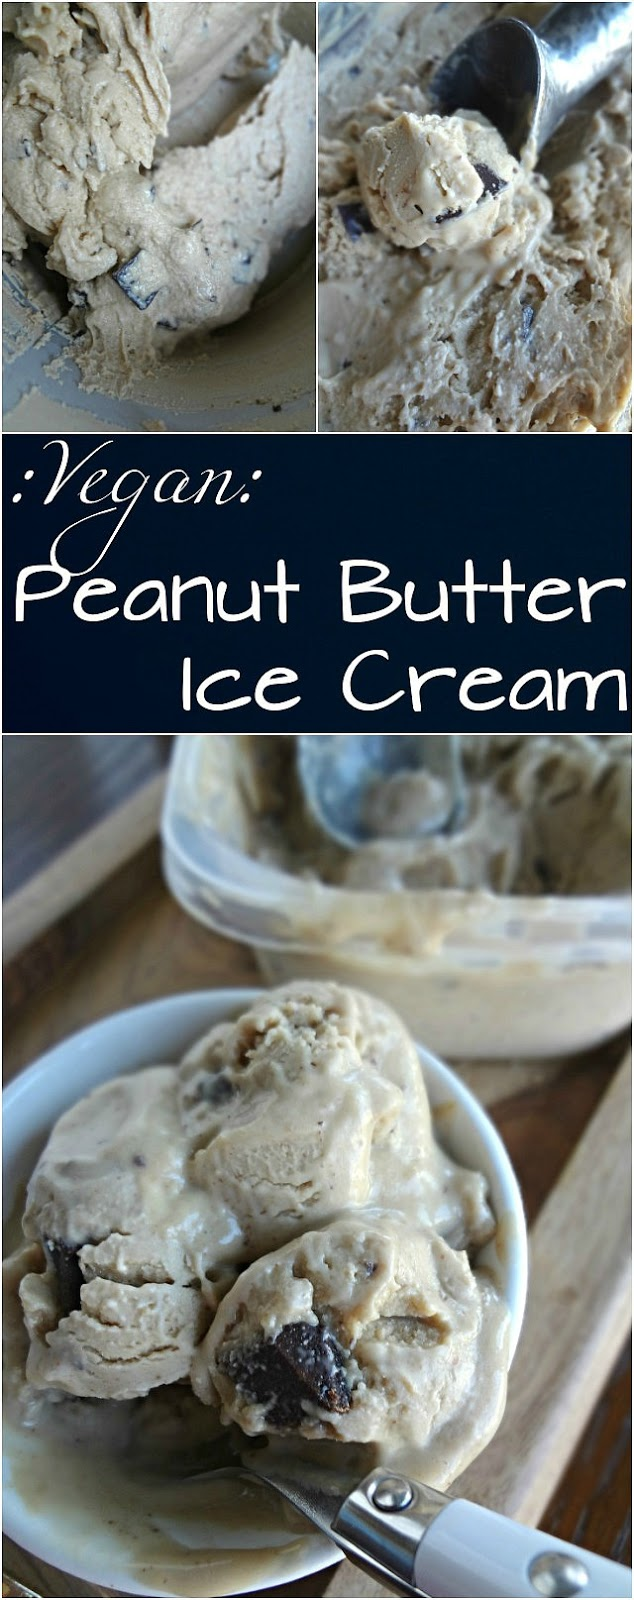 Vegan Peanut Butter Ice Cream